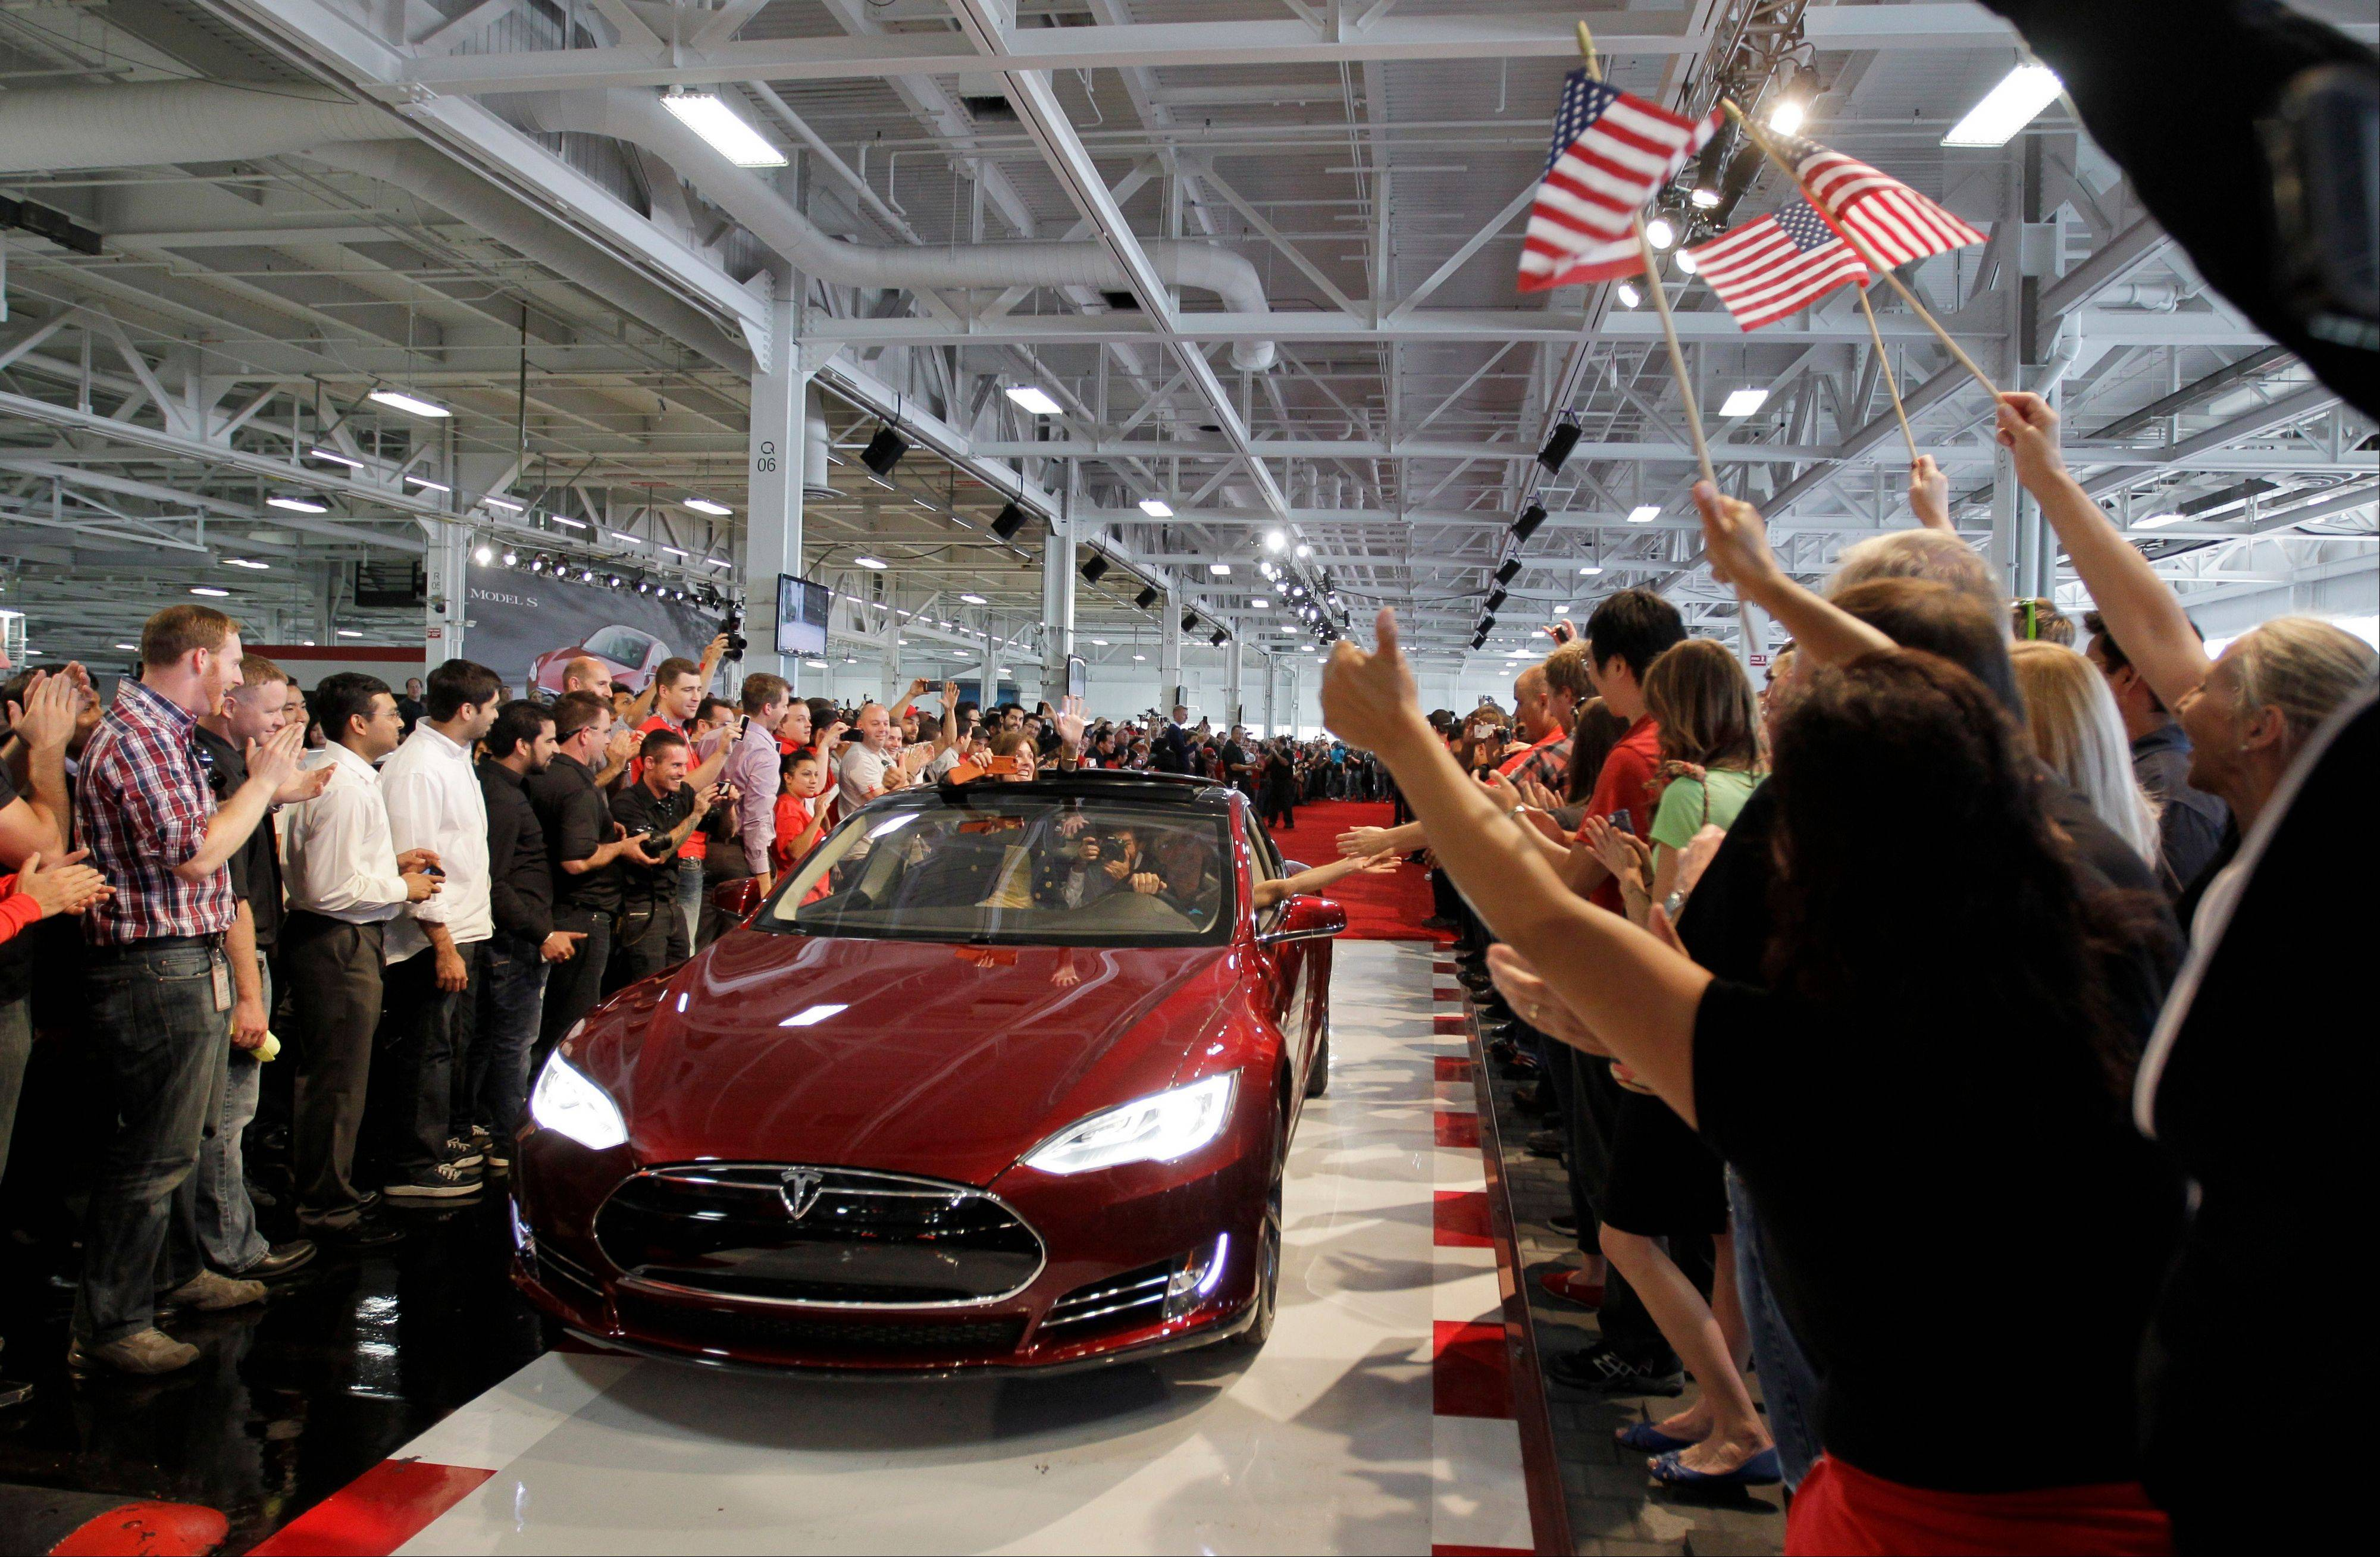 "Tesla workers cheer on the first Tesla Model S cars sold during a rally at the Tesla factory in Fremont, Calif., on June 22. The San Jose Mercury News' Troy Wolverton began his Model S review thusly: ""I am now a member of a select club: I'm one of the very few who has driven Tesla's new all-electric Model S luxury sedan."""